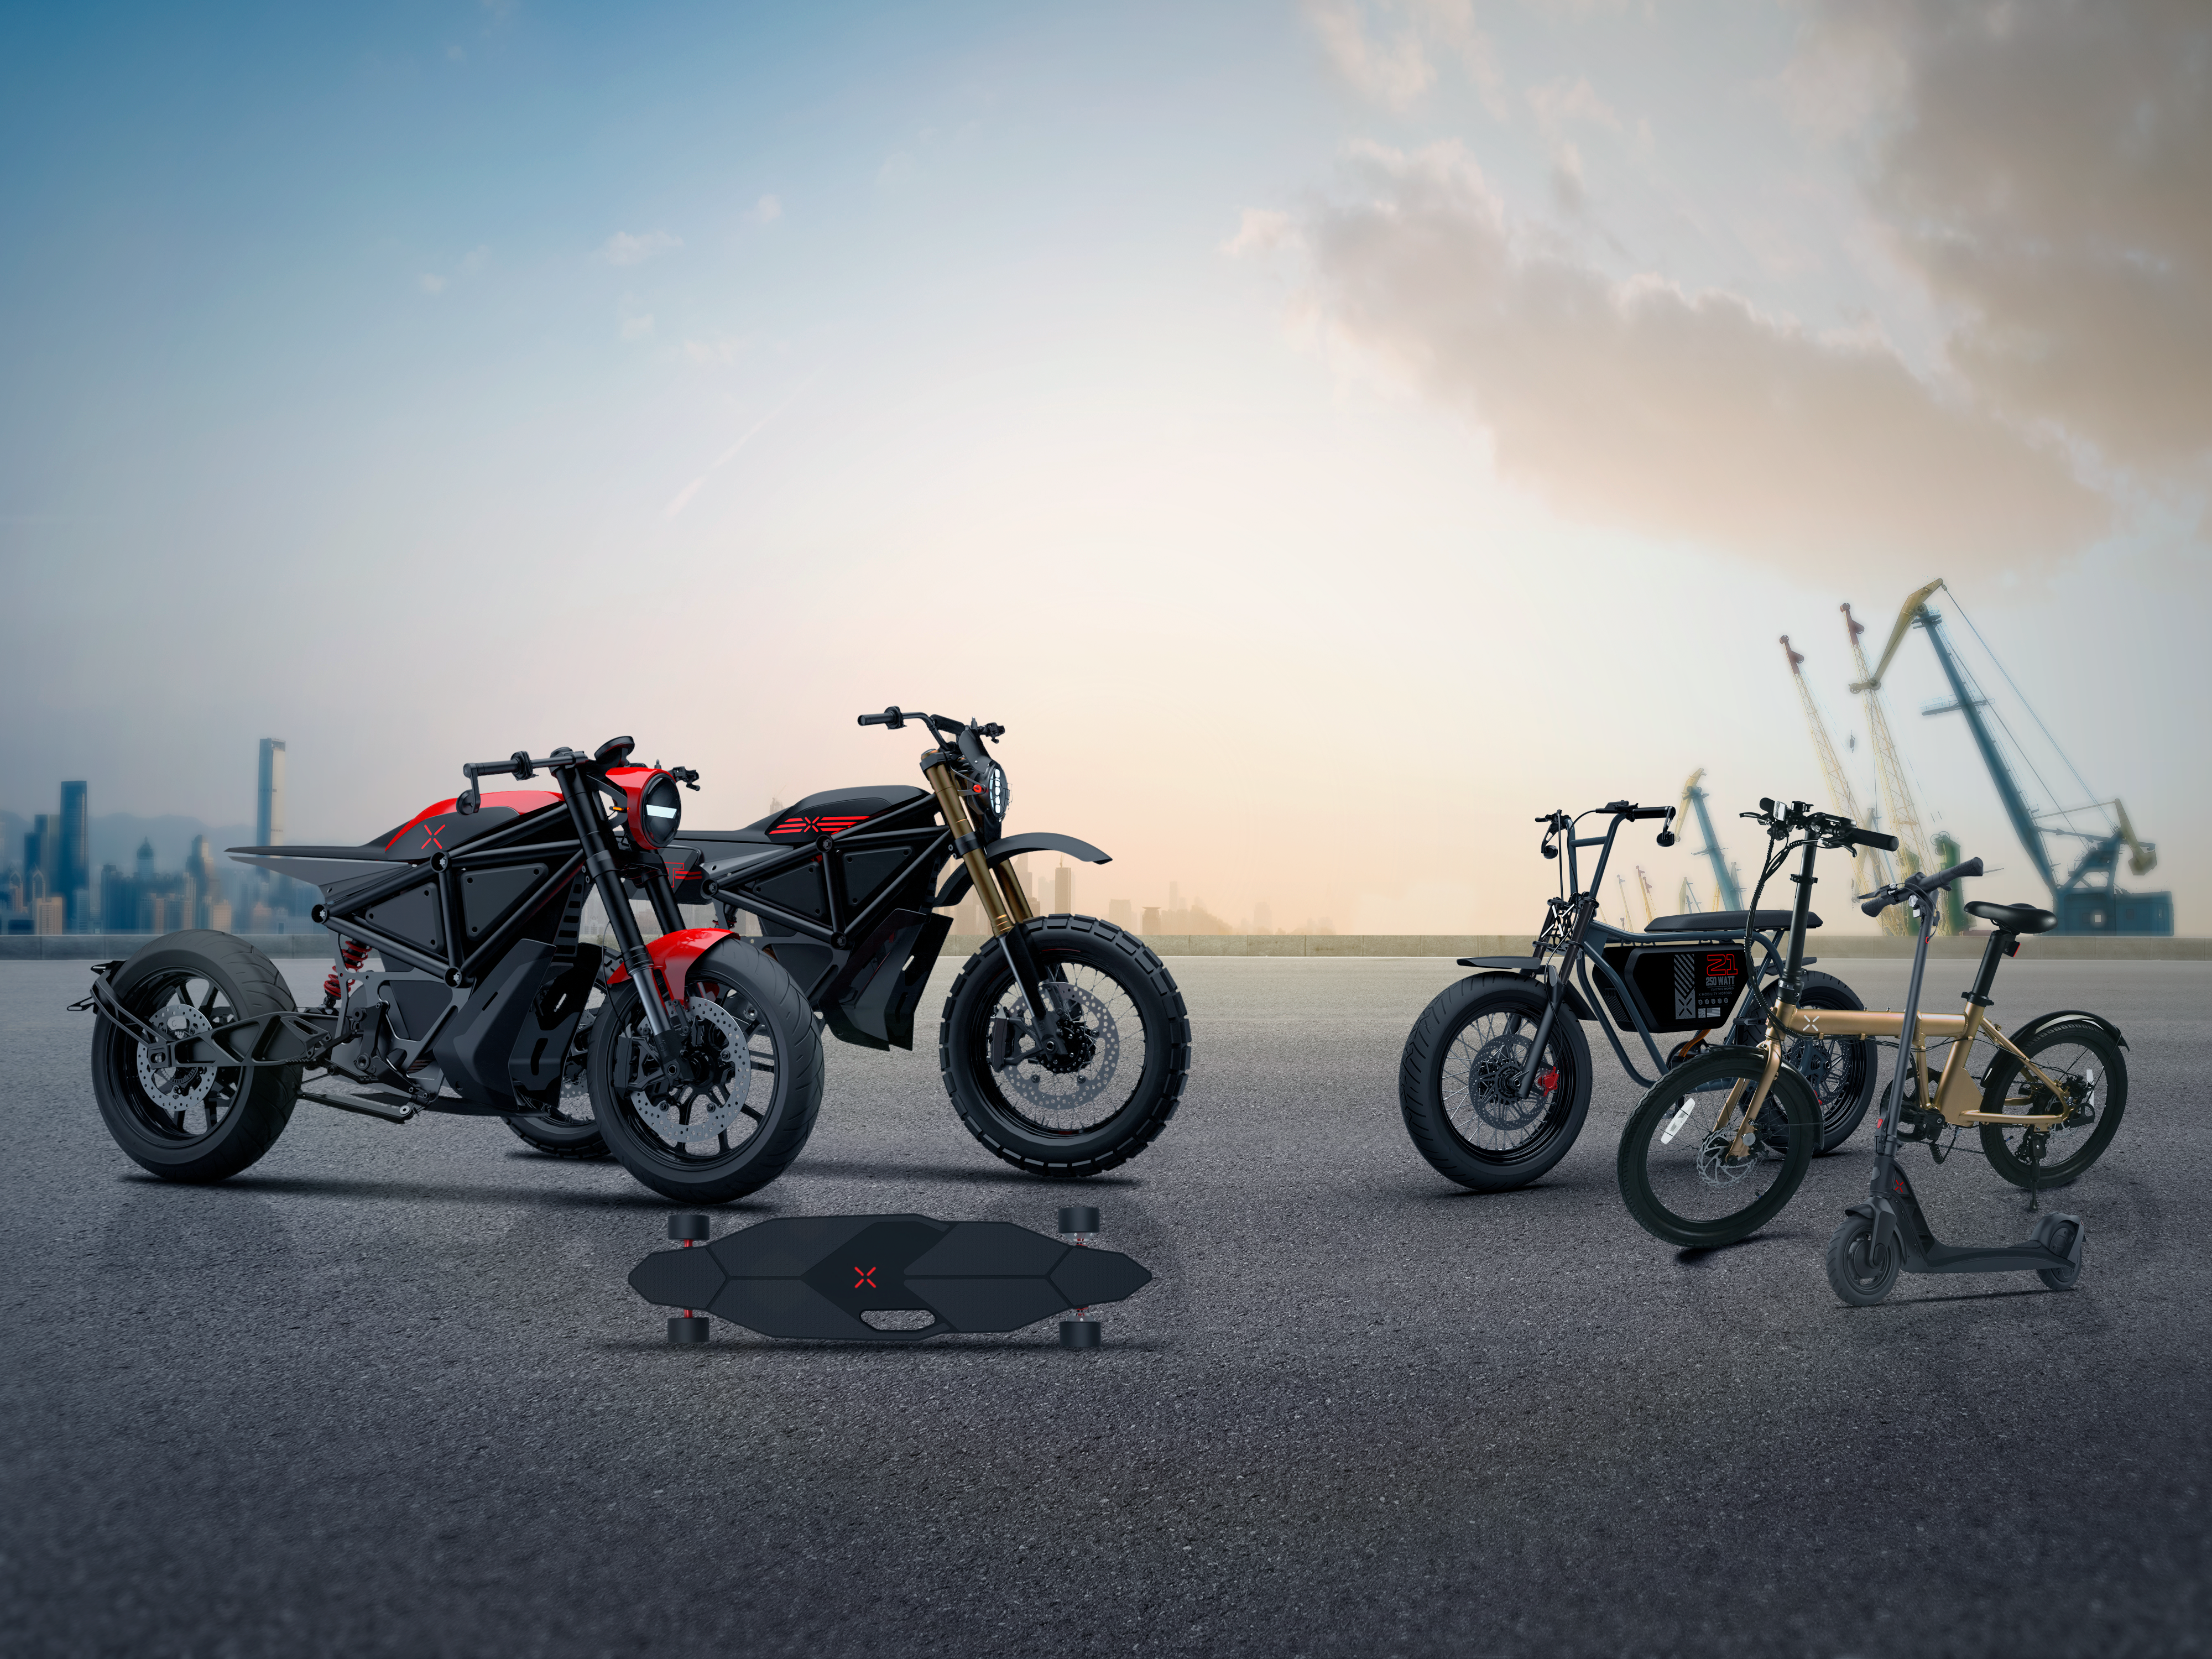 X Mobility Motors' electric roadmap includes a skateboard, kickscooter, folding ebike, a moped and two motorcycles